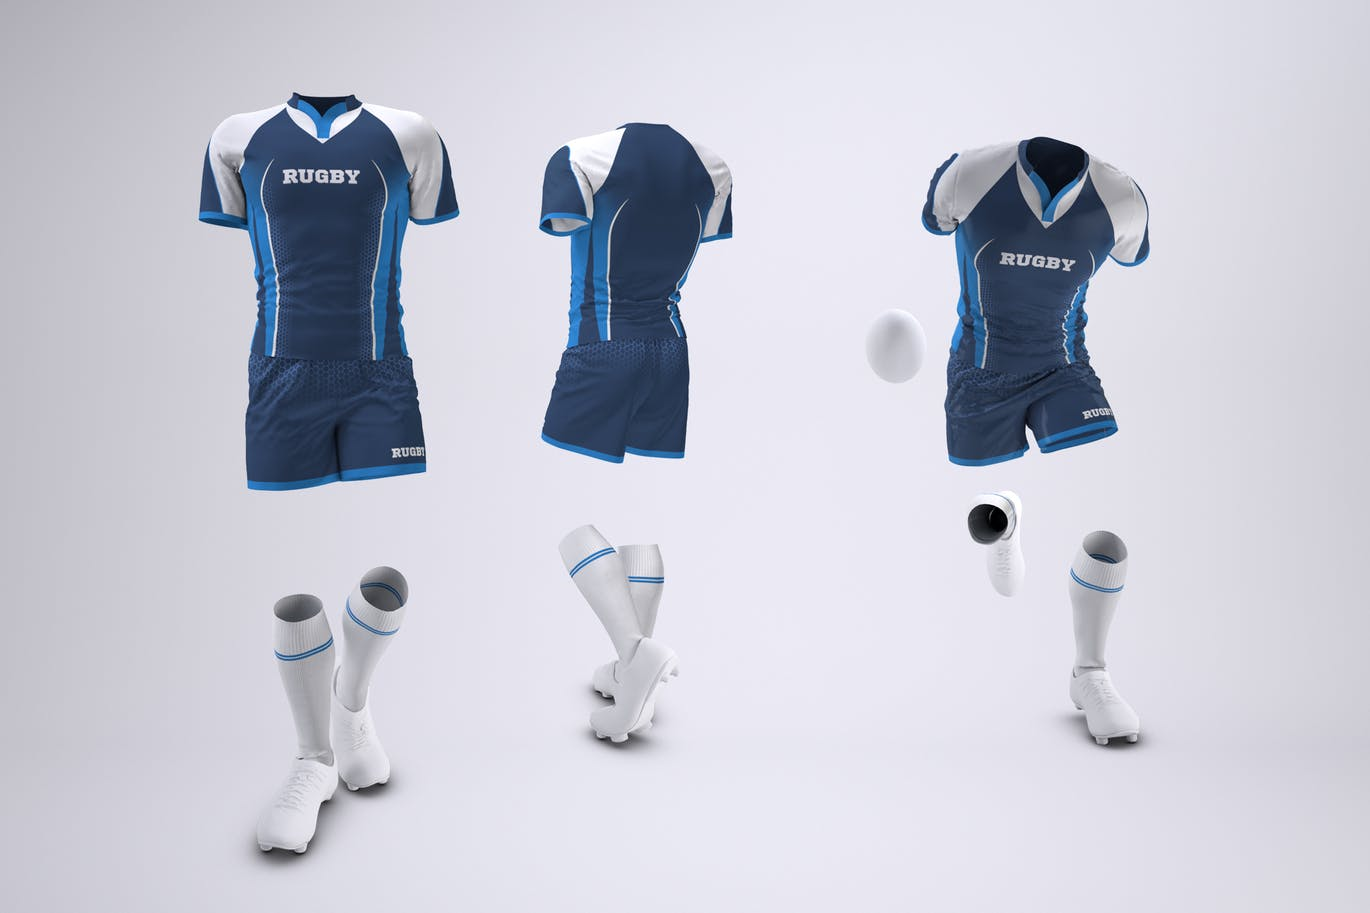 Rugby Team Uniform Mock-Up